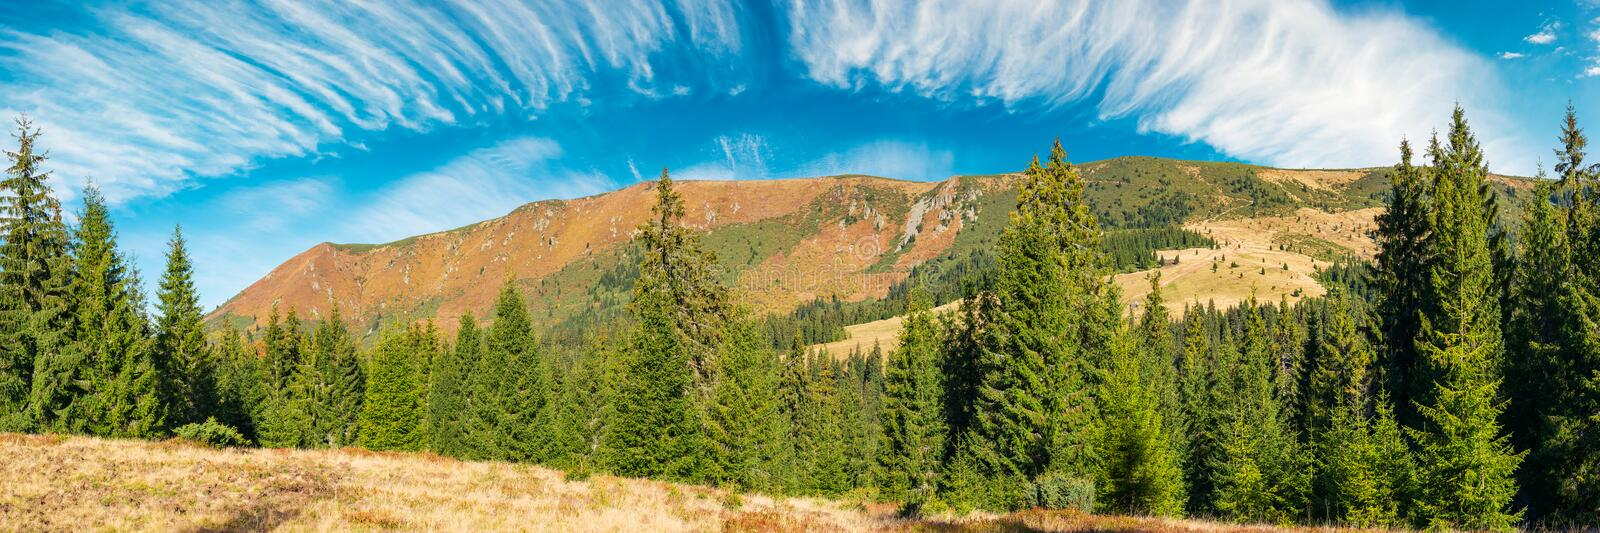 Mountain ridge under the gorgeous sky with clouds royalty free stock photo